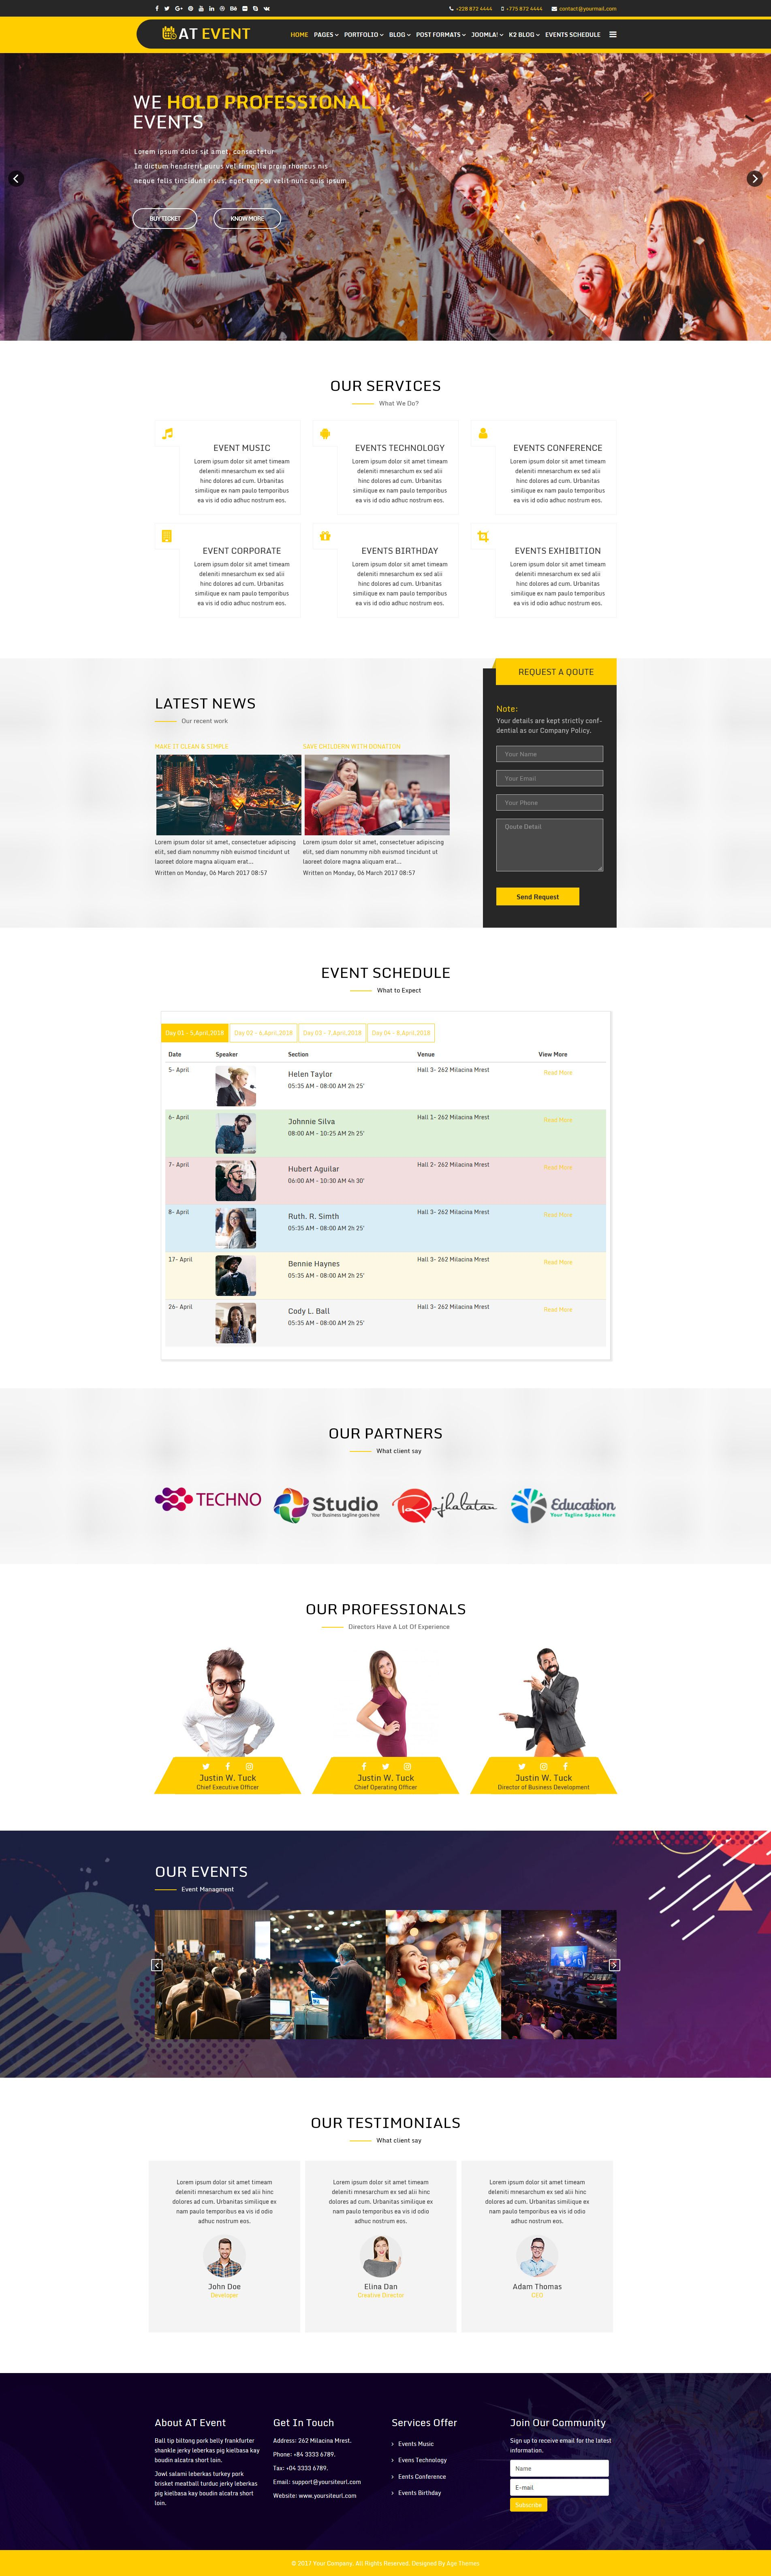 AT Event – Responsive Conference Joomla Template Screenshot 1